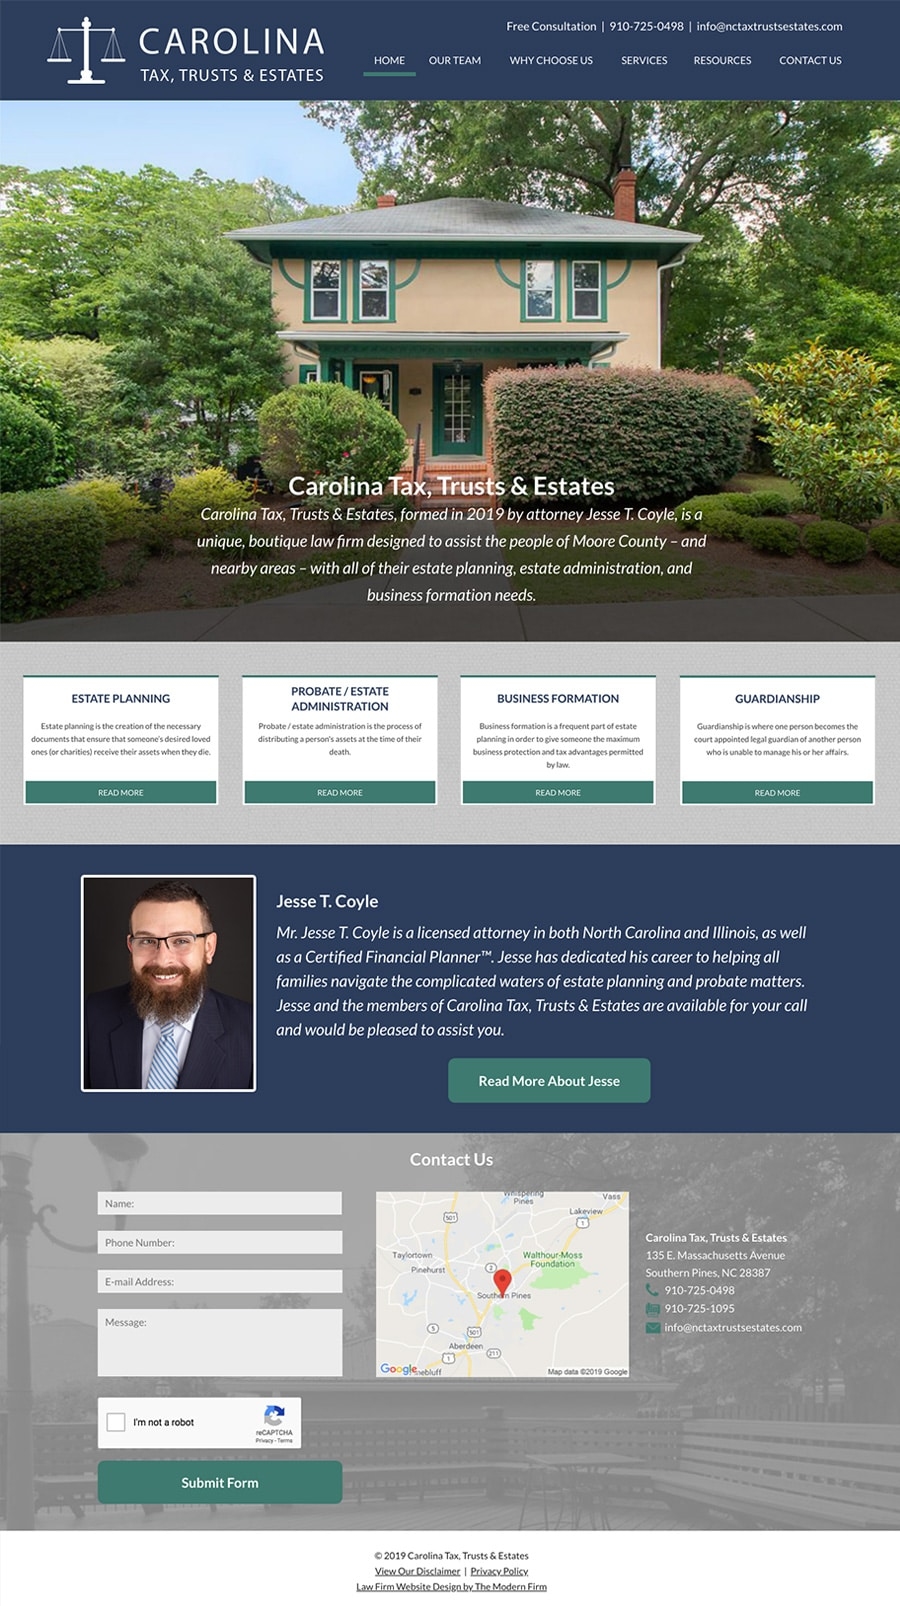 Law Firm Website Design for Carolina Tax, Trusts & Estates